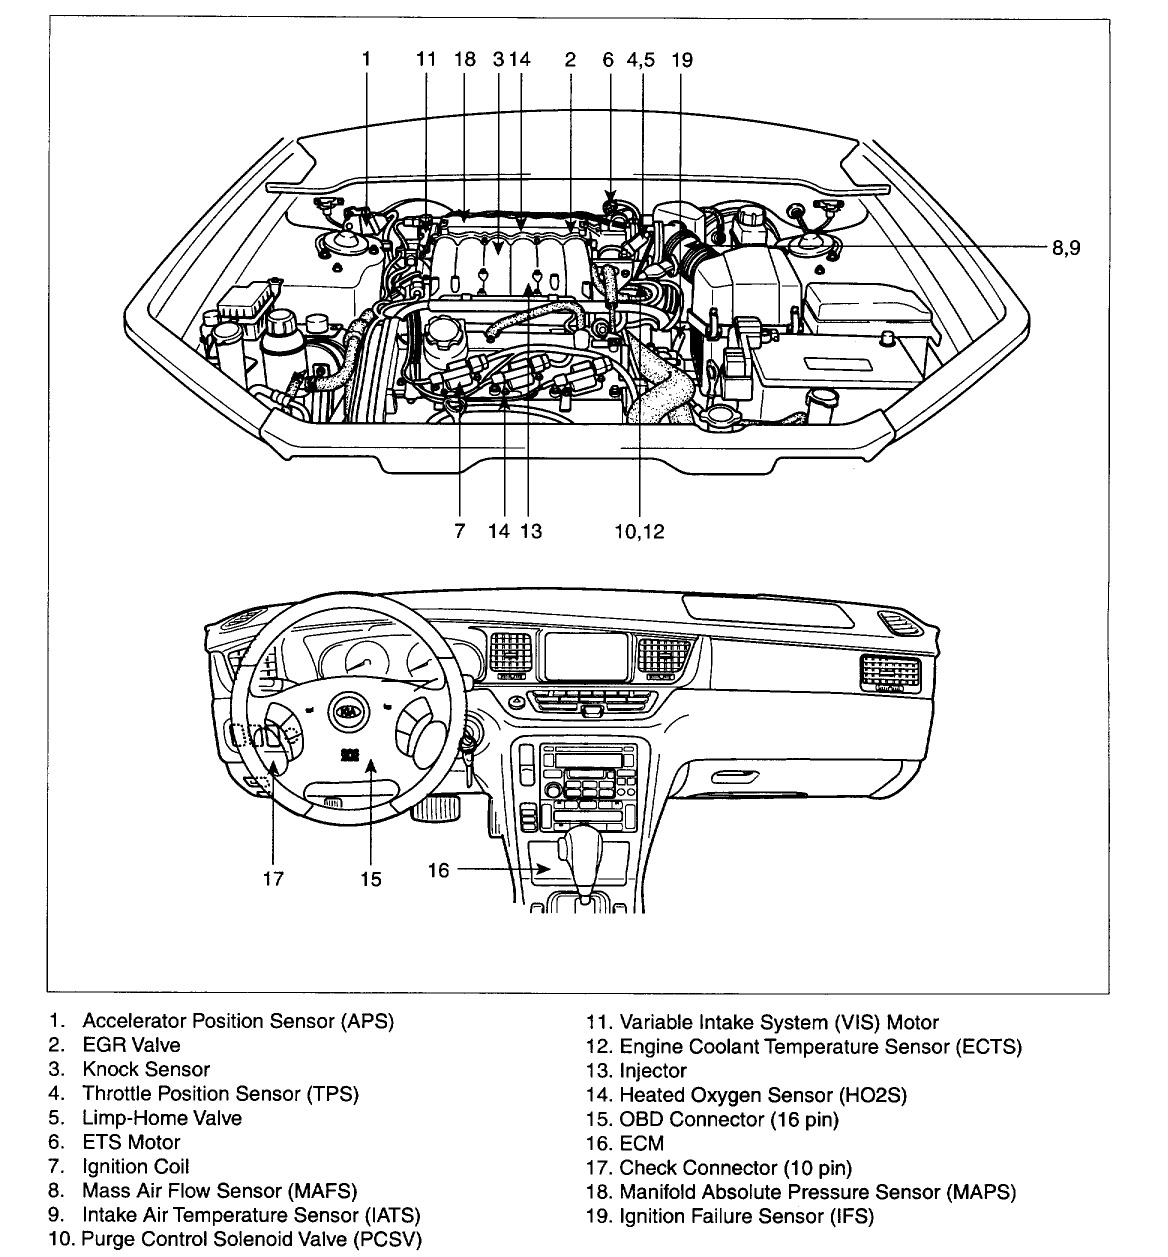 Kia Amanti Electrical Wiring Diagram Guide And Troubleshooting Of Optima Engine Misfire Following A Spark Plug Wire Change Rh 2carpros Com Sportage Radio